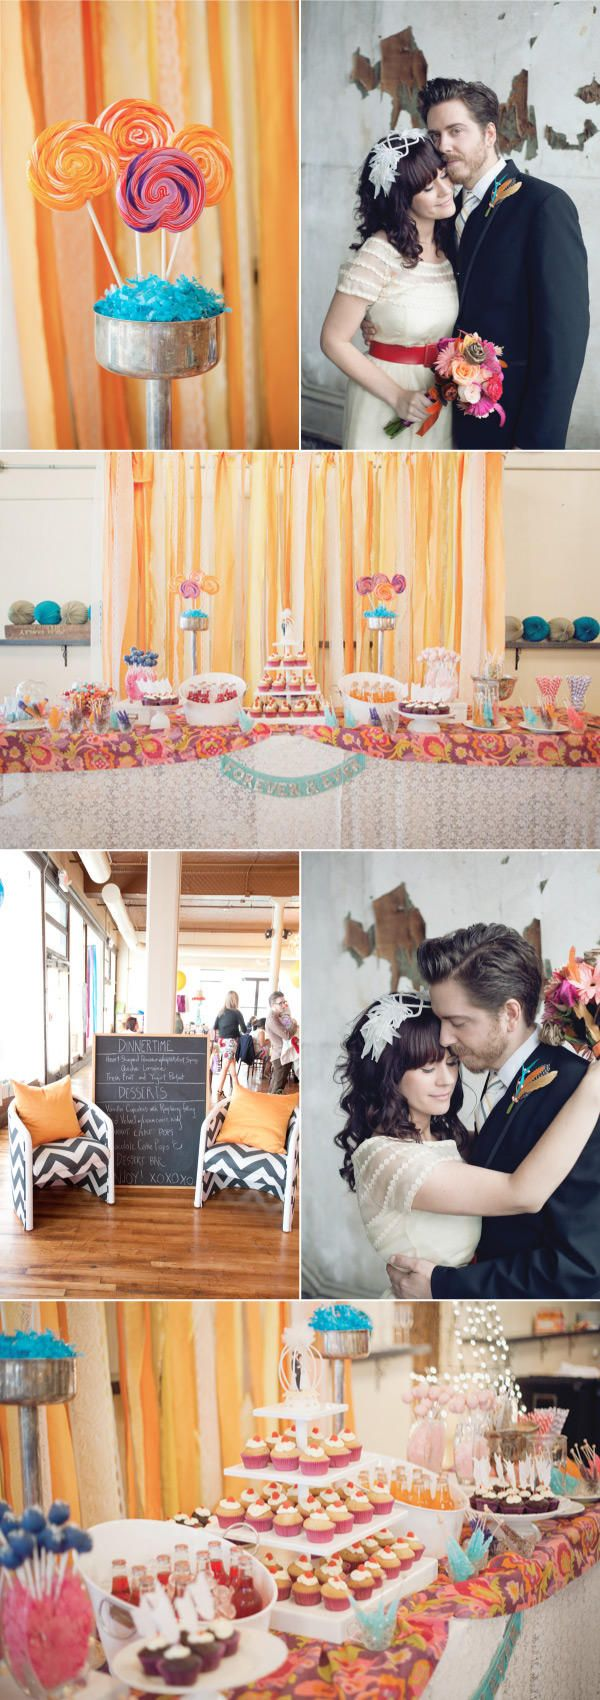 quite the whimsical dessert table. Perhaps we can do something similar in a darker color scheme.